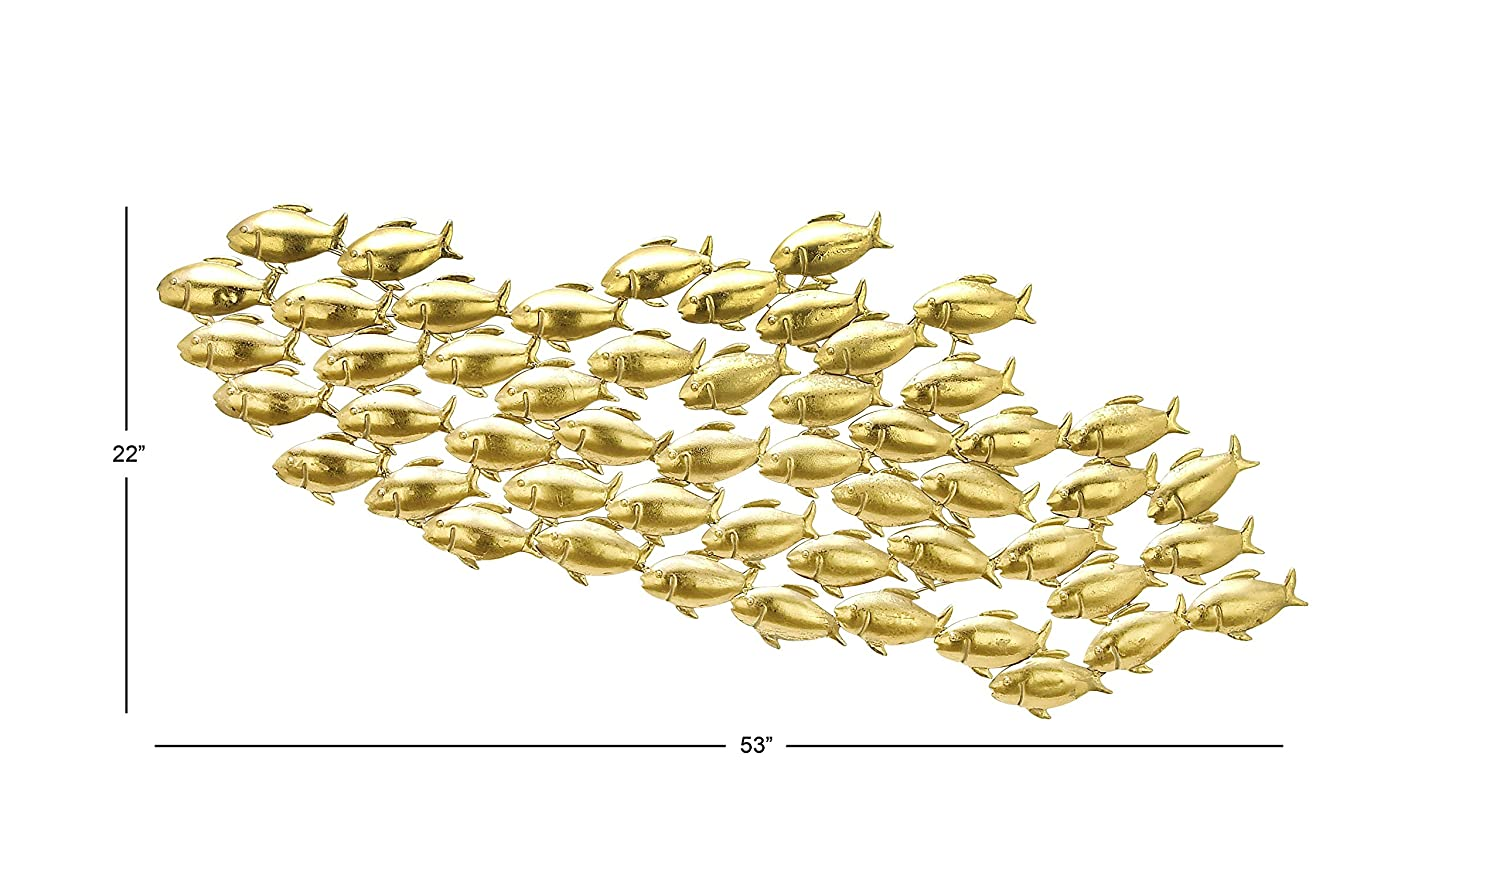 Amazon.com: Deco 79 65499 Metal Gld Fish Wall Decor 53\